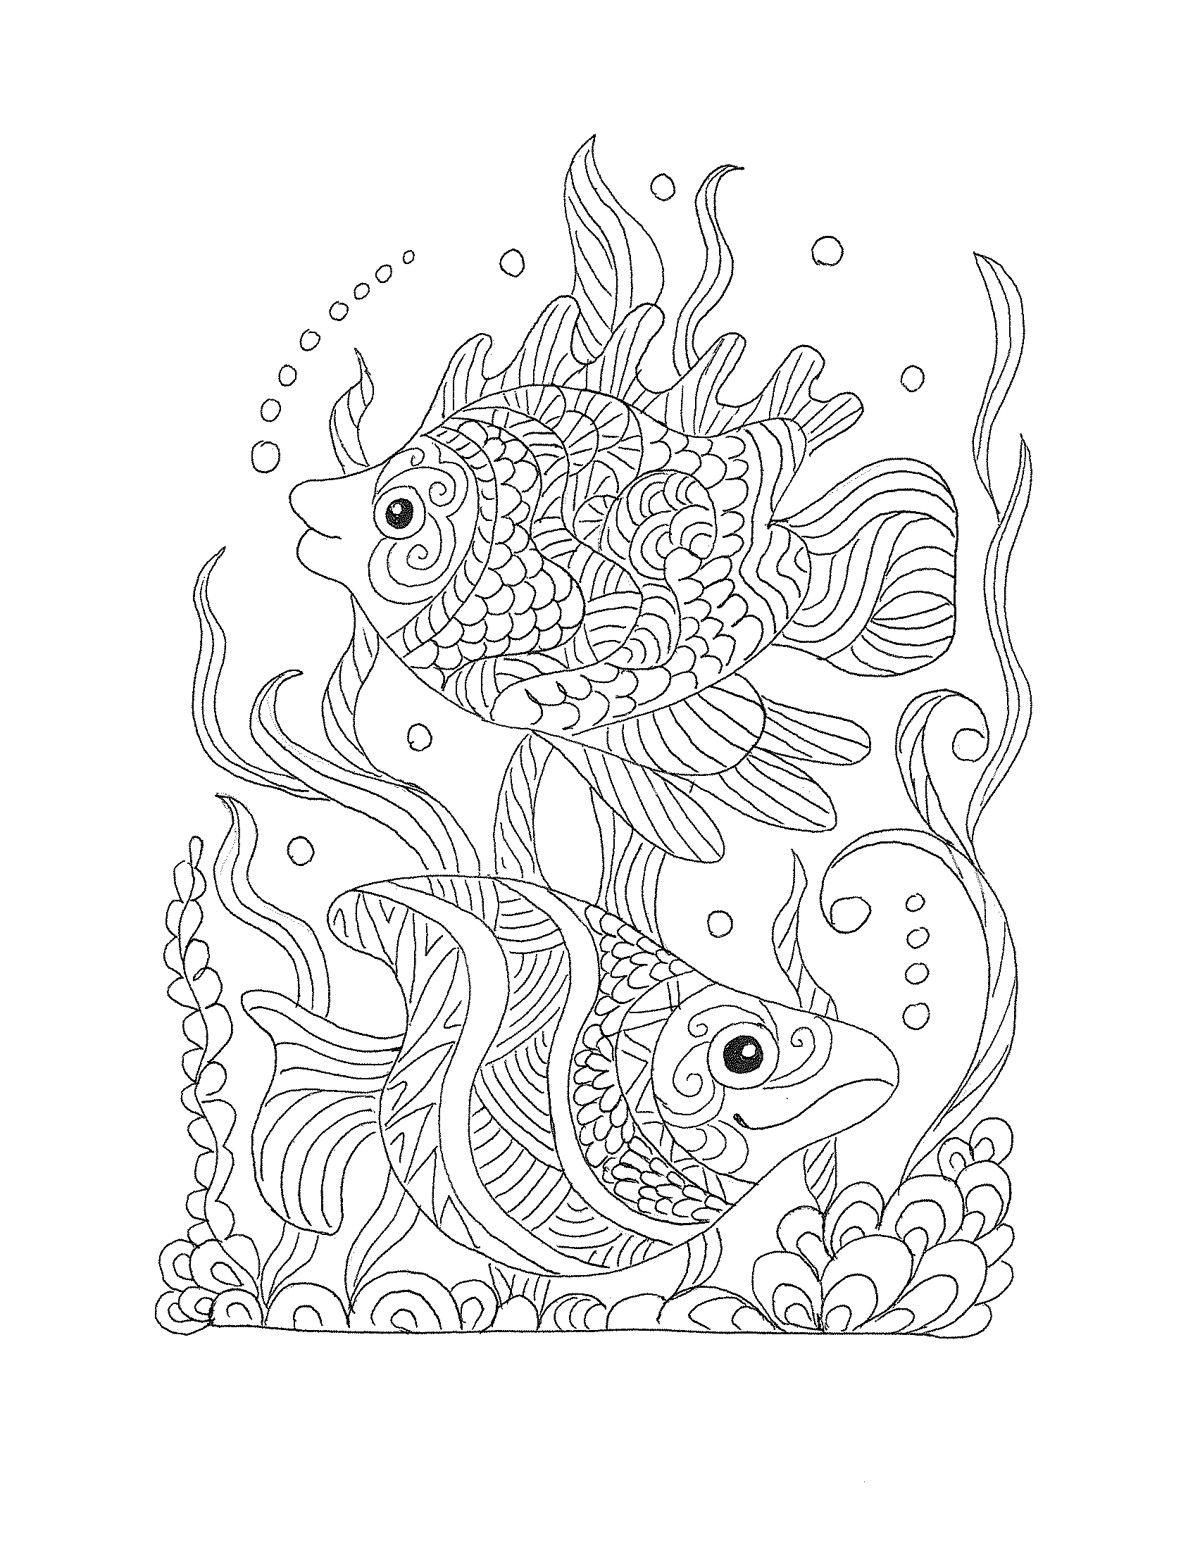 The Artist In You Coloring Book For Adults Kindle Edition By Irina Velman Arts Photography Kindle Ebooks Amazon C Coloring Books Nautical Drawing Color